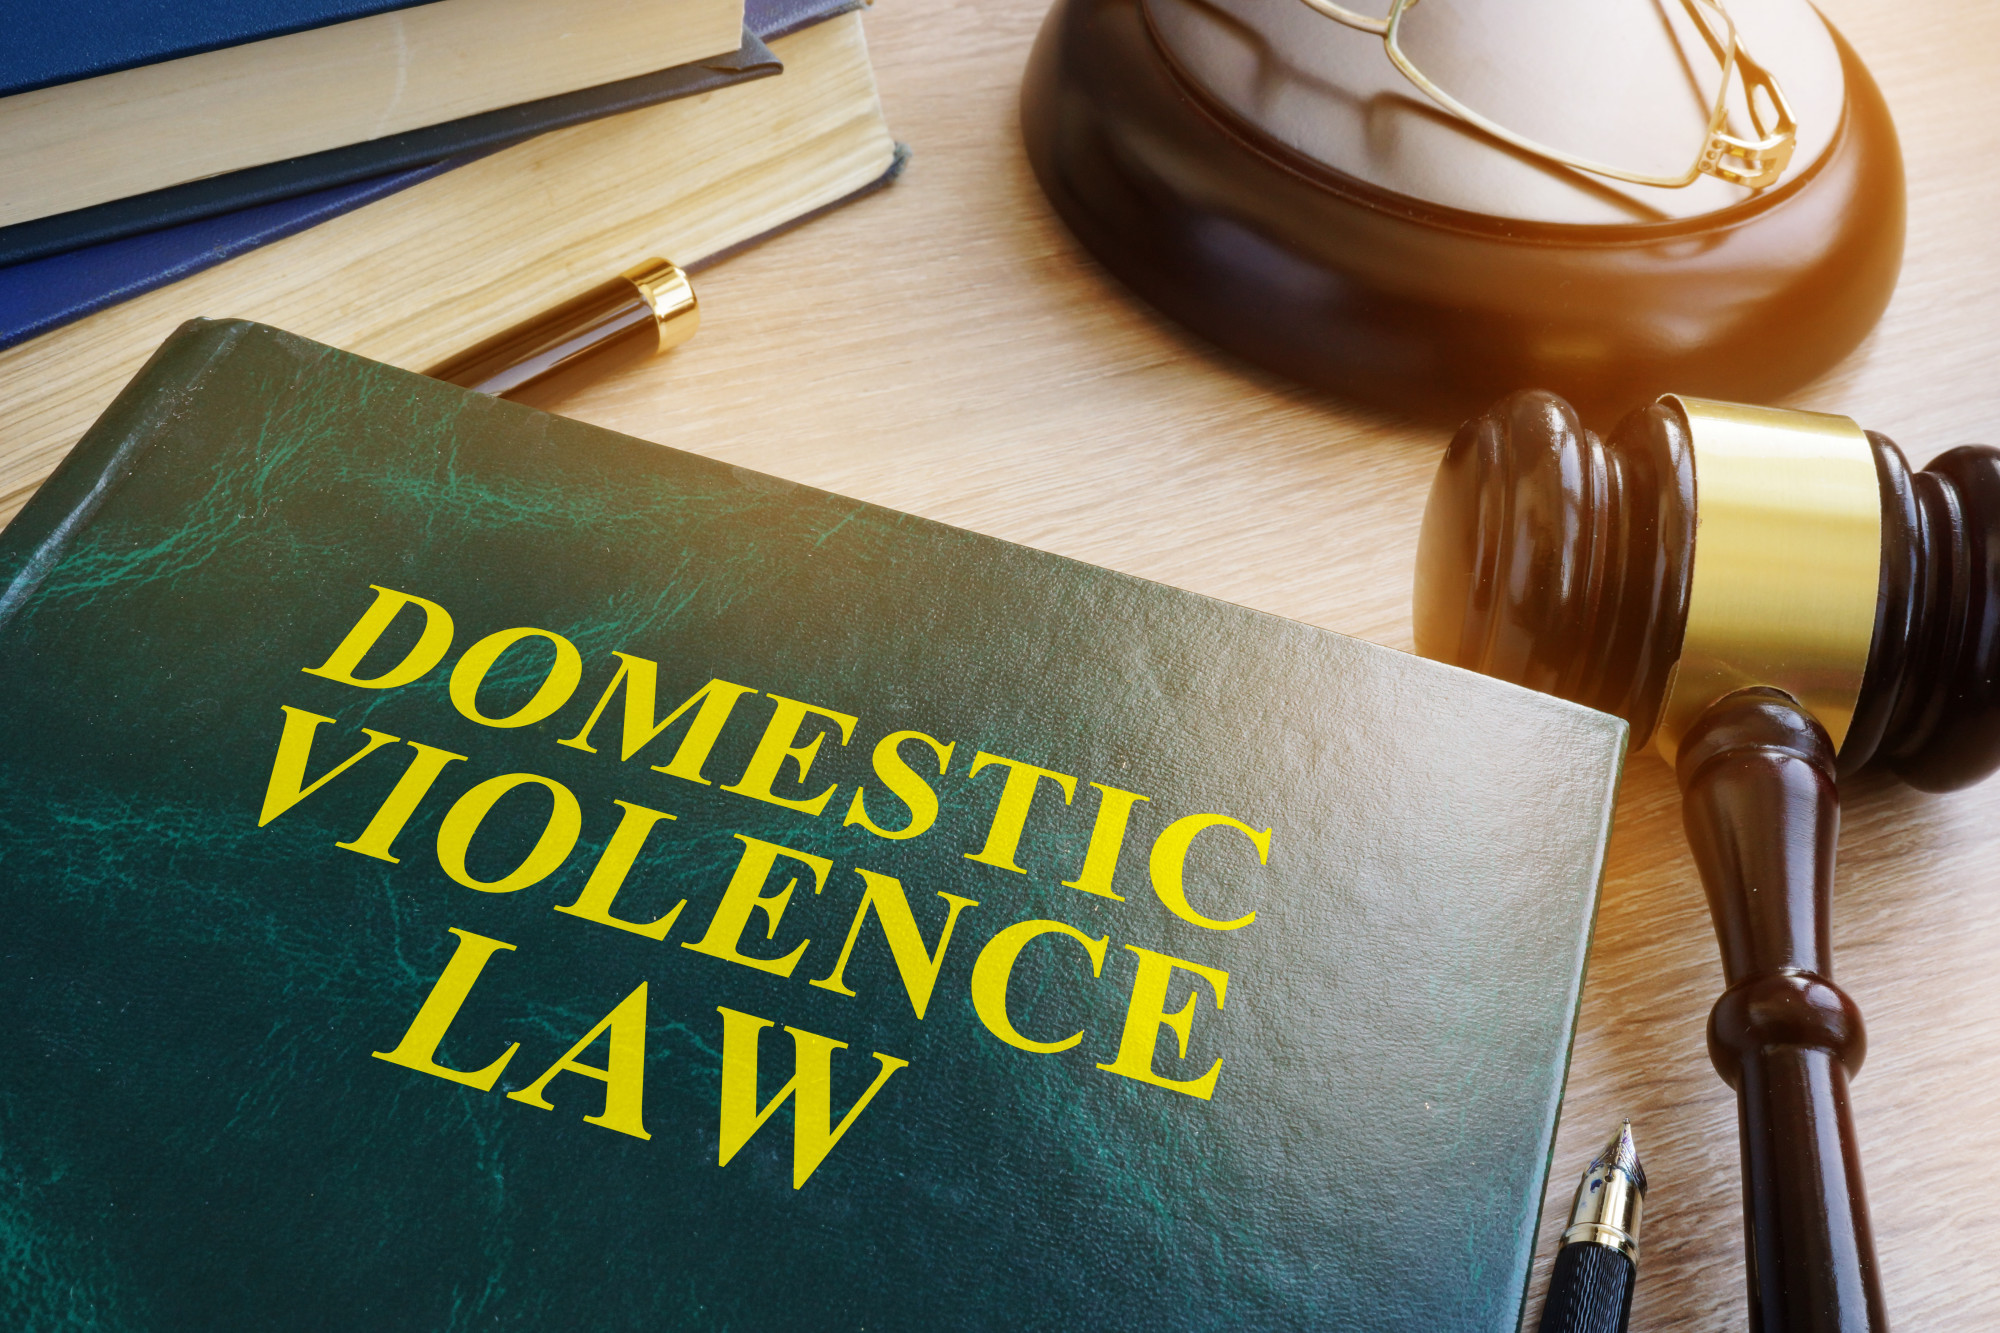 Domestic Violence Defense Attorney: What Kind of Lawyer Defends the Victim?